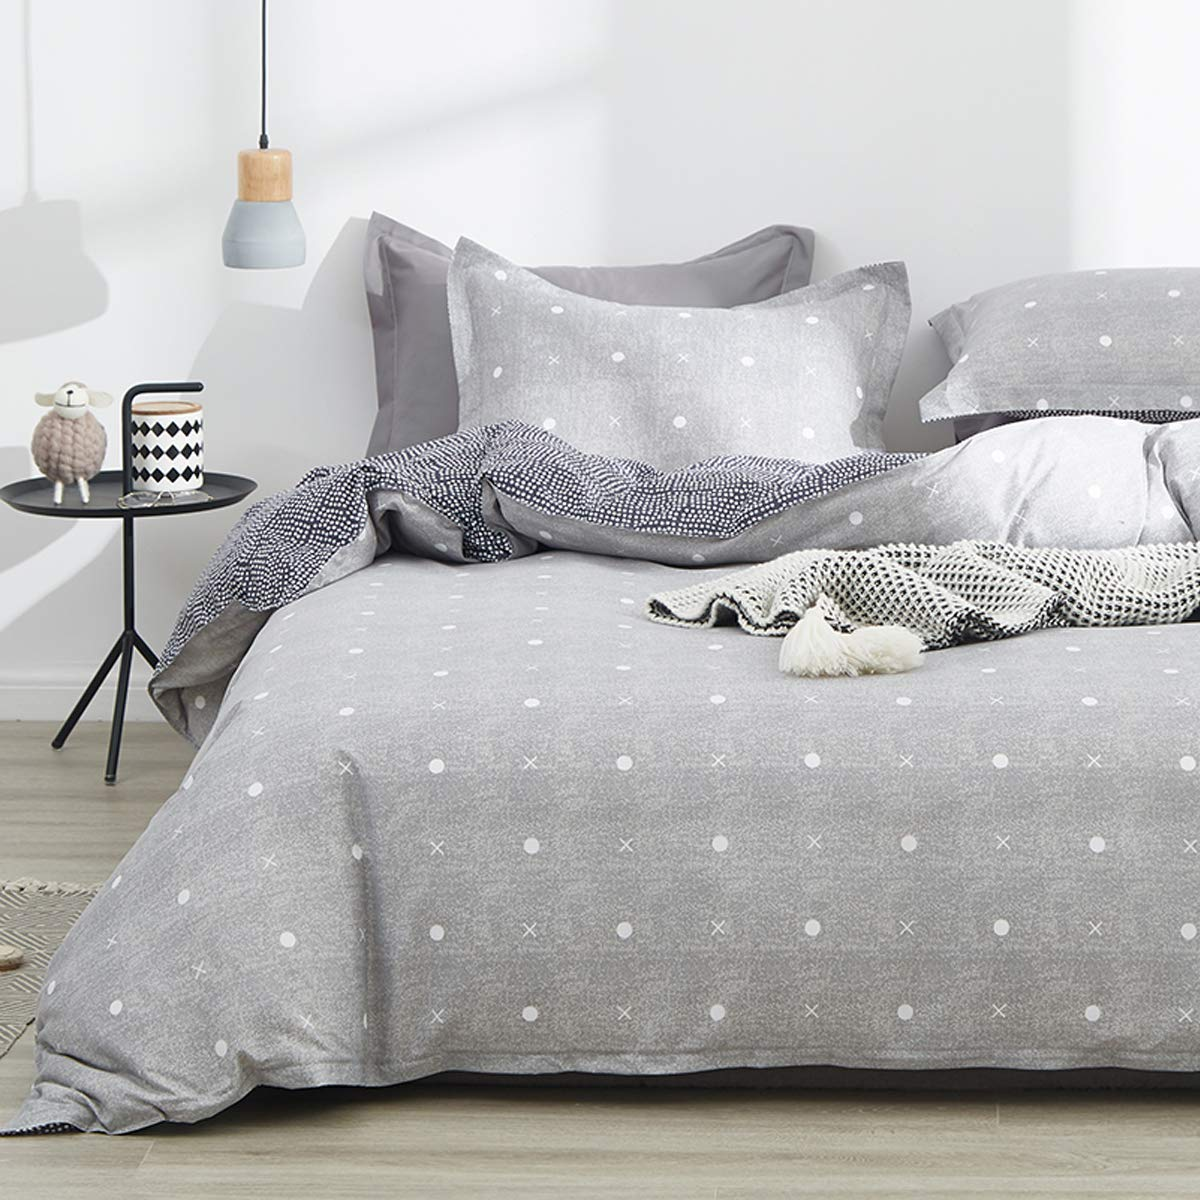 Uozzi Bedding 3 Piece Gray Duvet Cover Set Queen (1 Duvet Cover + 2 Pillow Shams) with Dots and Cross Hypoallergenic, Zipper Closure, 4 Corner Ties, Comforter Cover Christmas or New Year Gift Choice by Uozzi Bedding